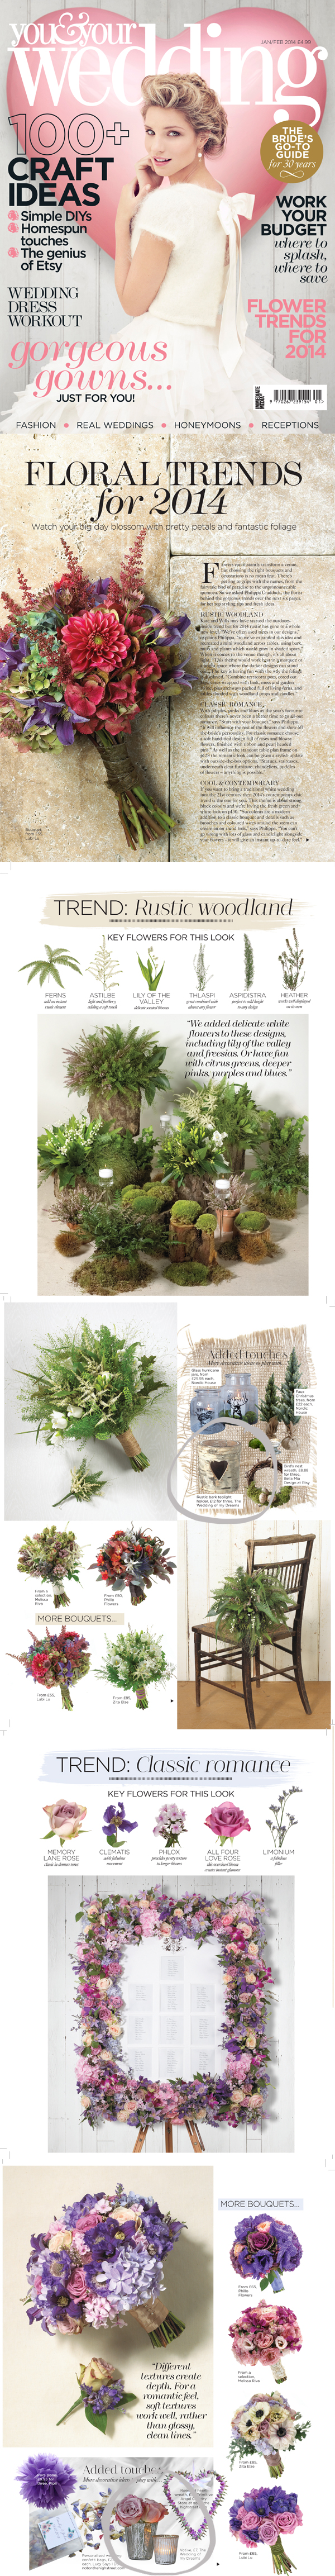 floral wedding trends 2014 woodland classic romance